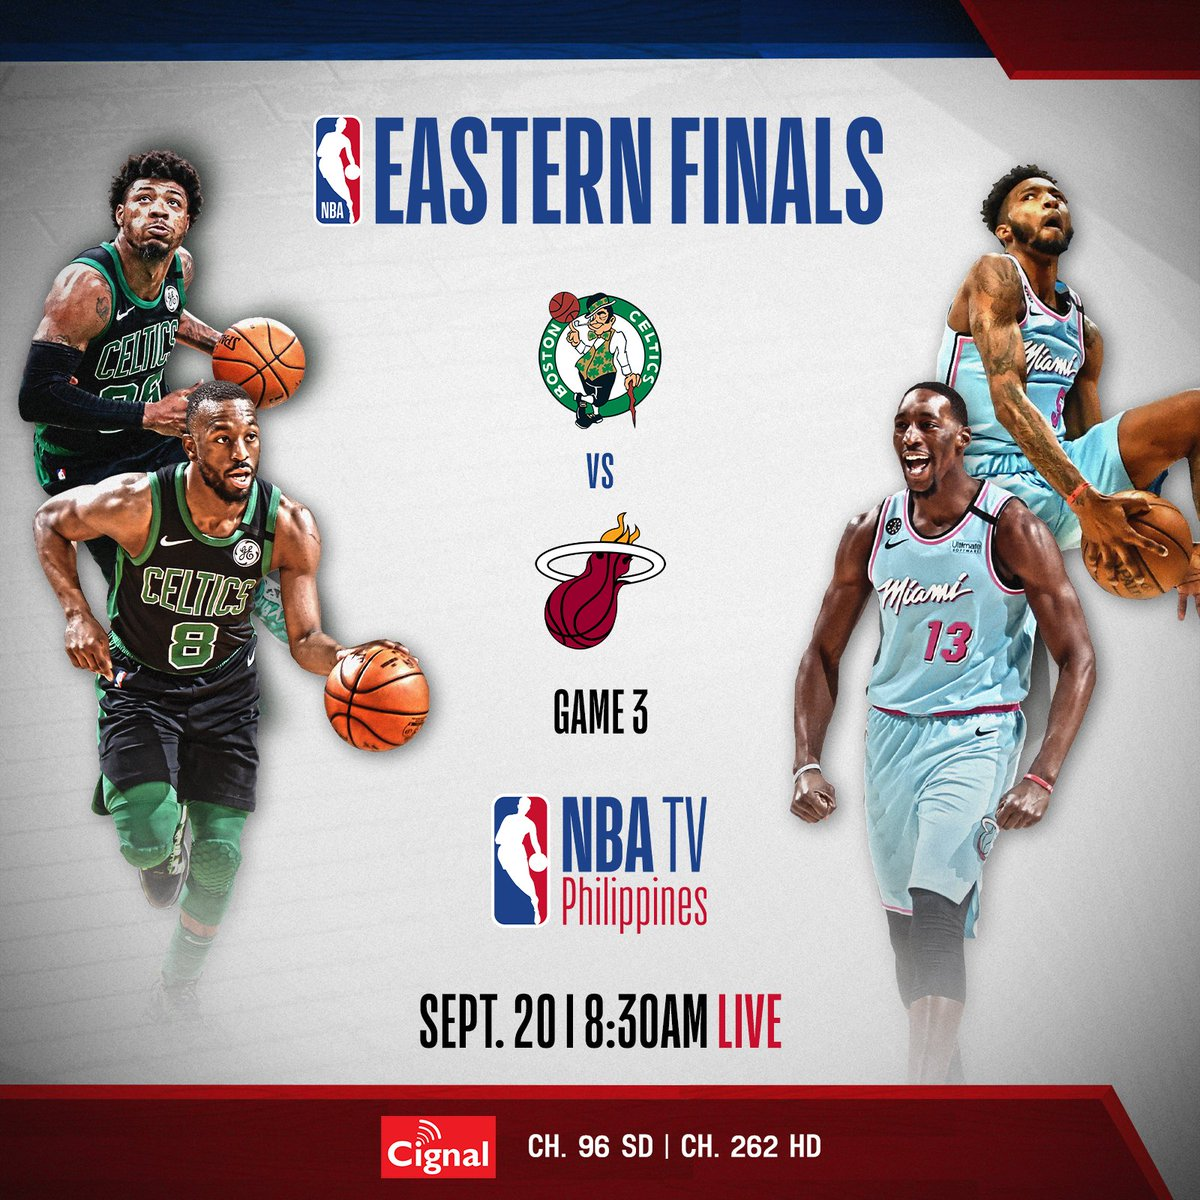 NBA Playoffs on NBA TV Philippines Schedule for September 20:  Heat vs Celtics (Eastern Conference Finals - Game 3)   8:30AM LIVE Replays at 2PM and 8PM  #StaySafeStayAwesome  #LiveAwesome  #WholeNewGame  #NBAPlayoffs  #NBAonCignal https://t.co/Za5ALu6nPg